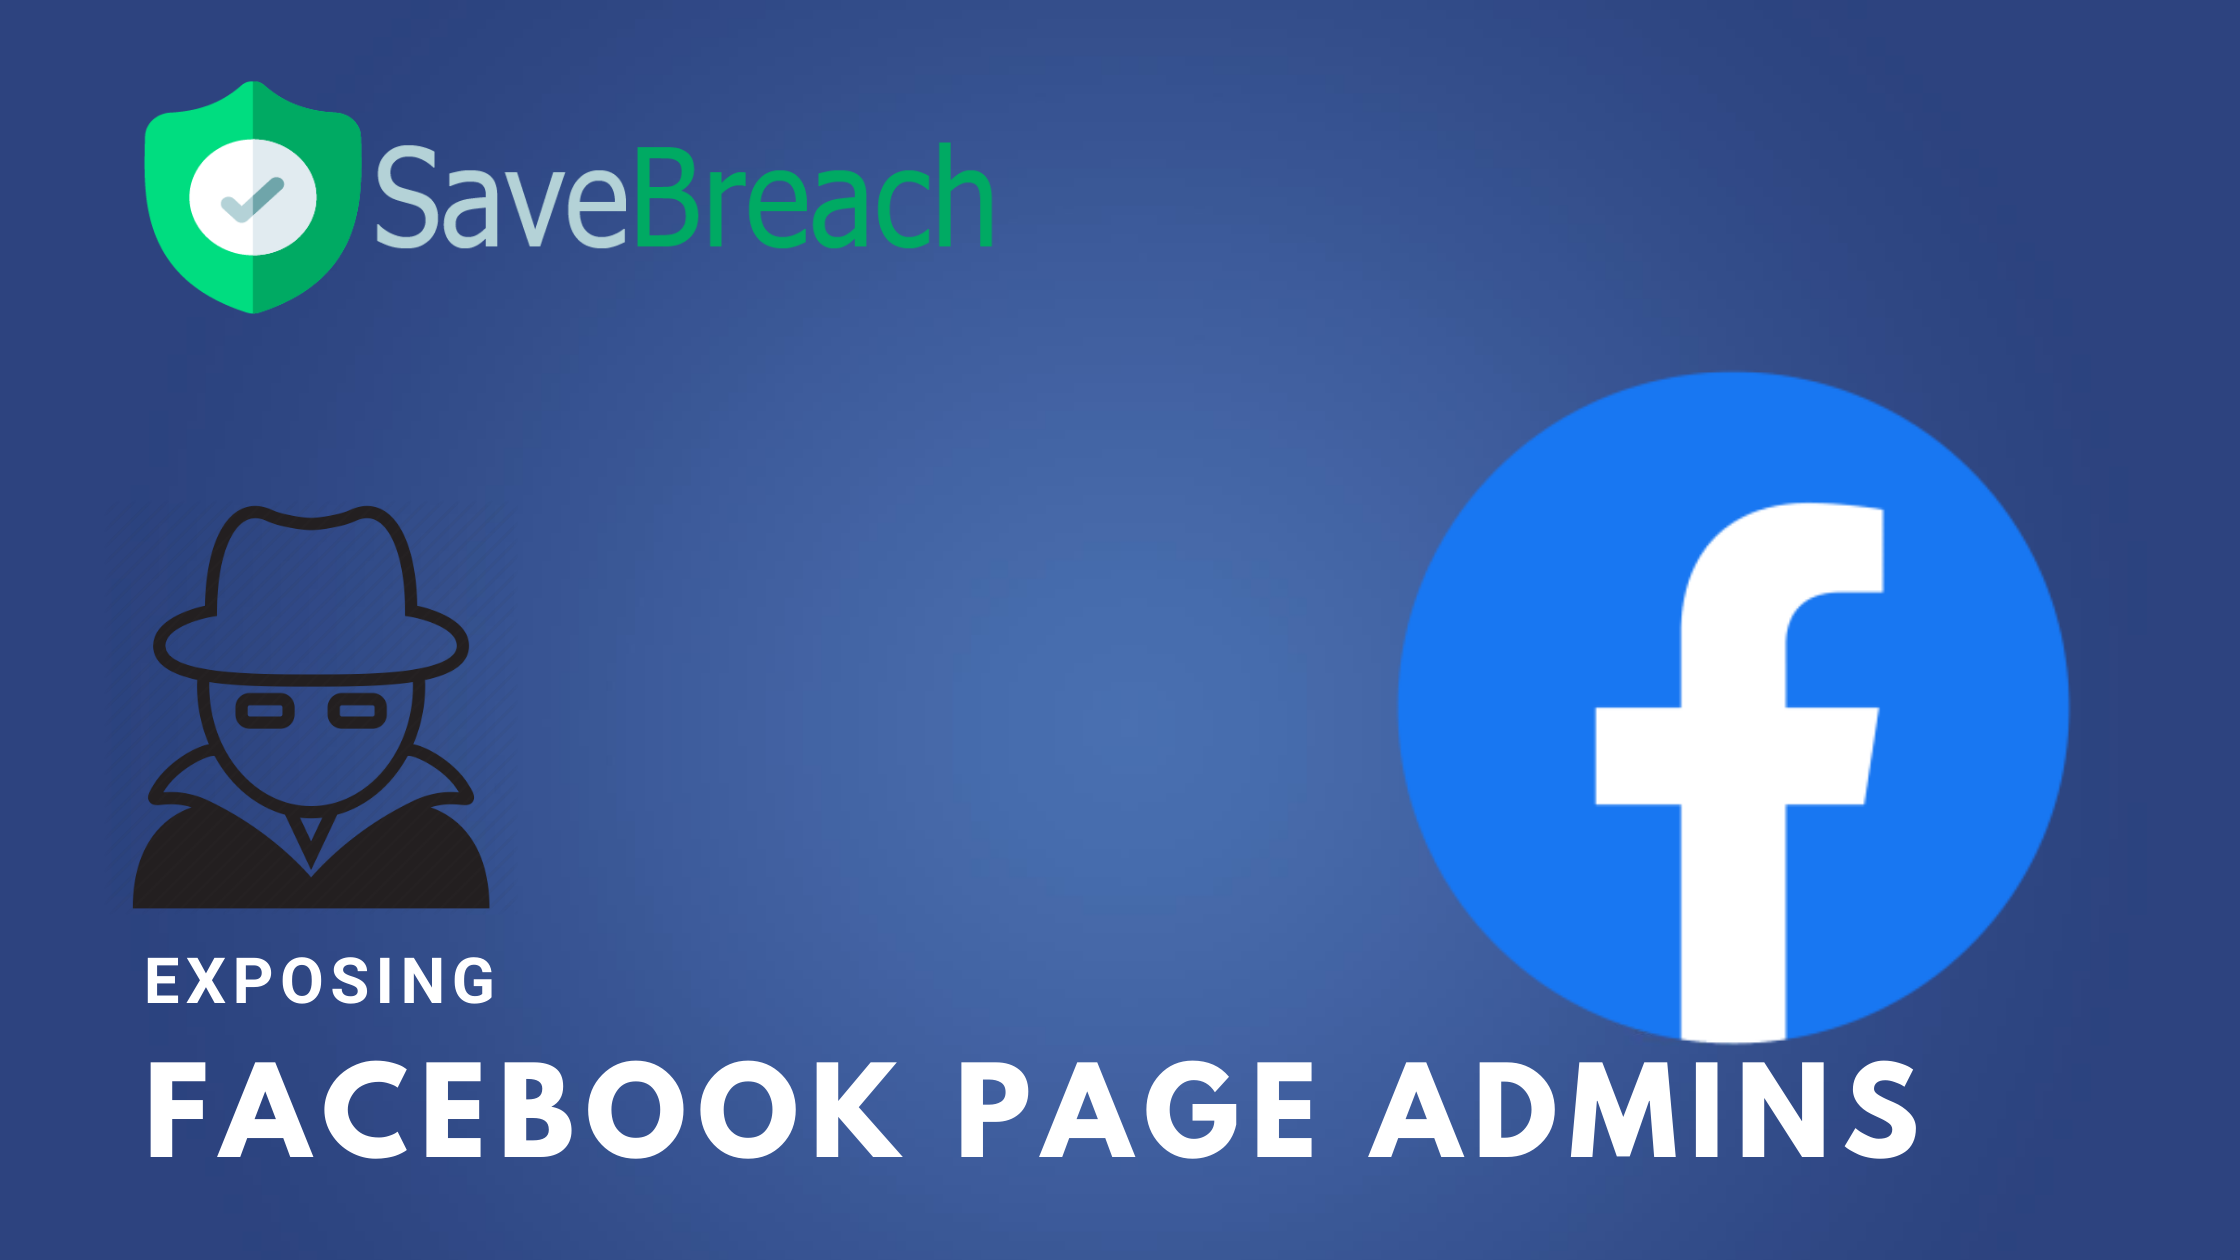 Vulnerability in Facebook that revealed a Page Admin's Identity